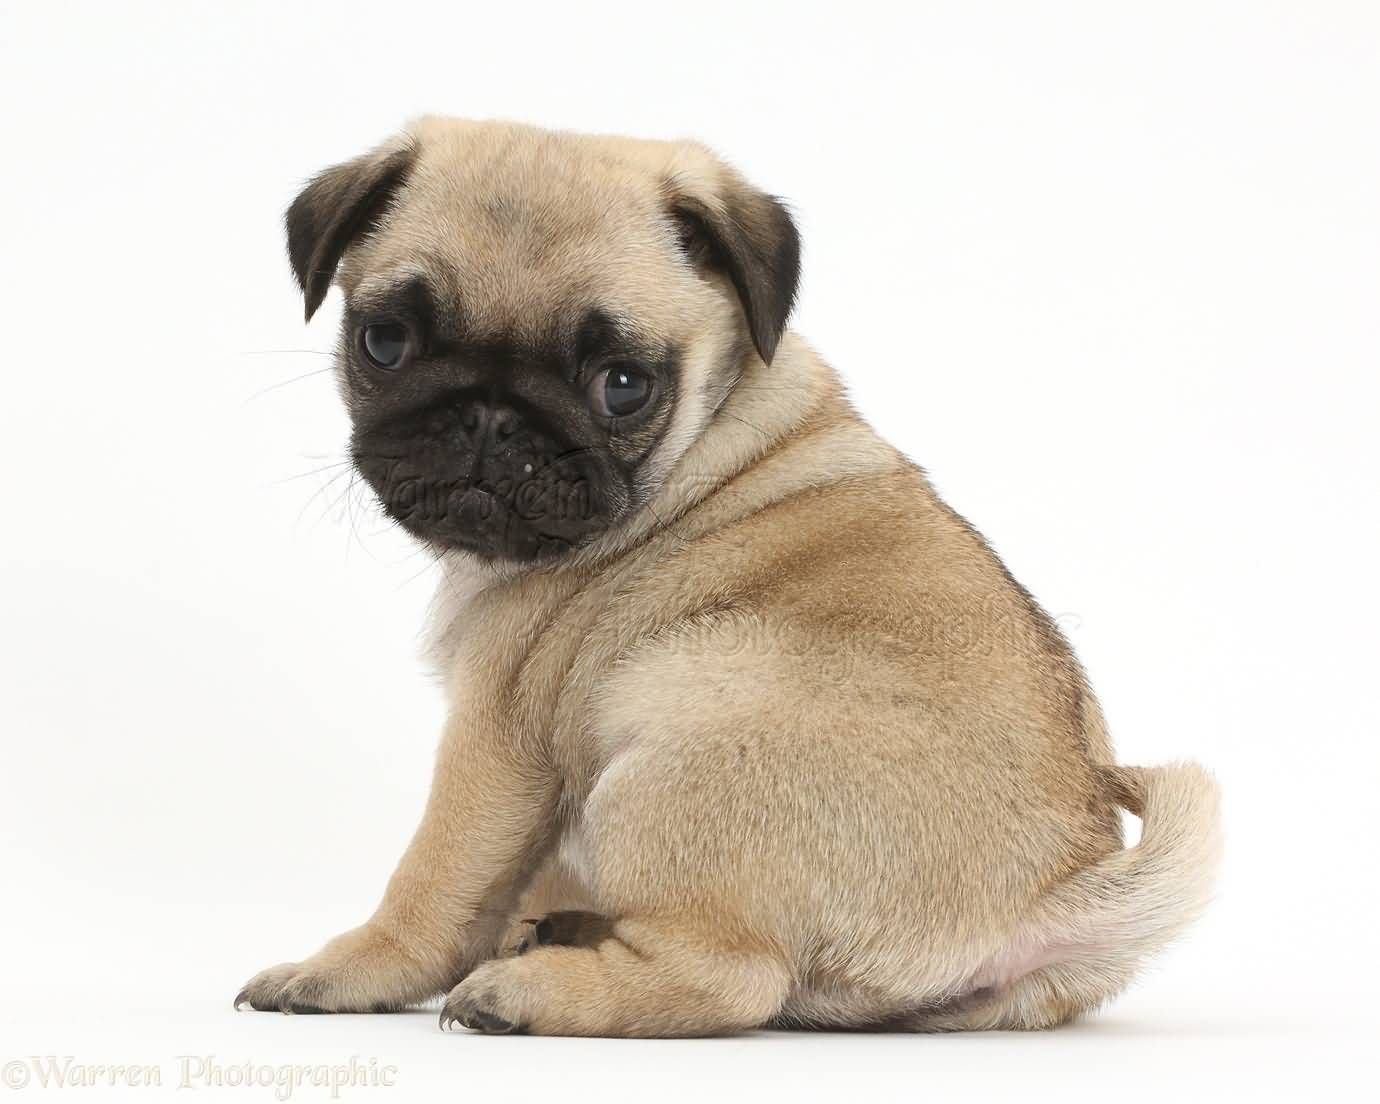 Pug Dog Pug Dog Price Pug Dog For Sale Pugs Puppies Pug Price What